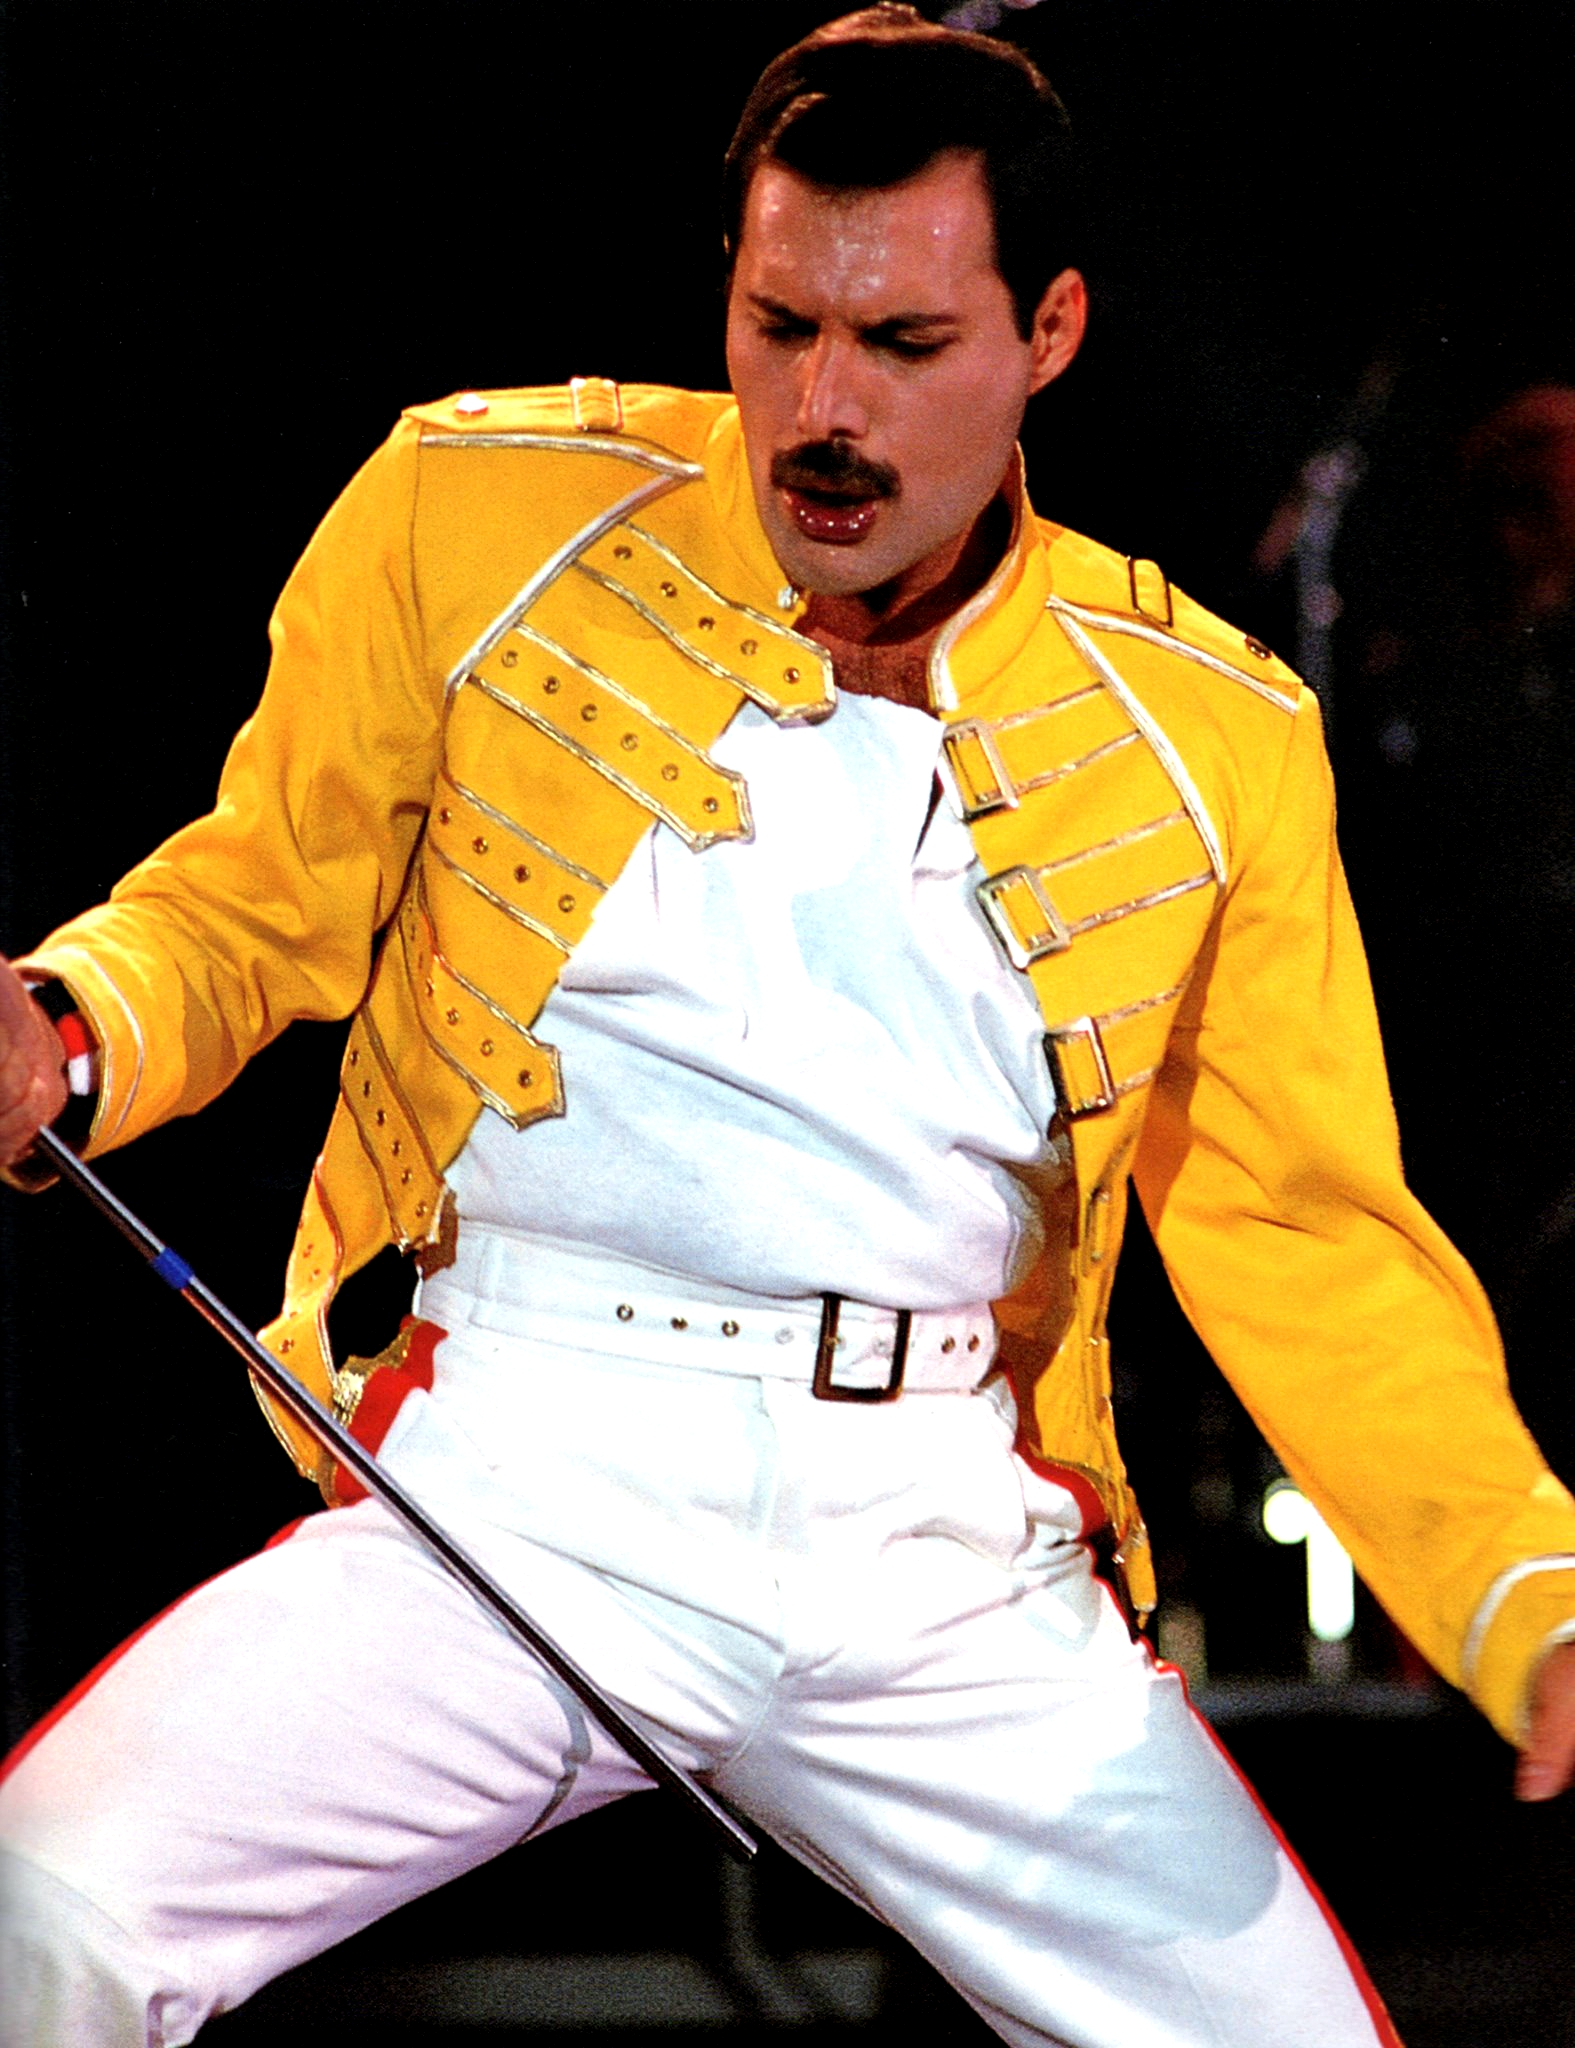 Freddie-Mercury-Queen-Yellow-Leather-Jacket-Costume/freddie%20mercury%20queen%20jacket%20buy.jpg